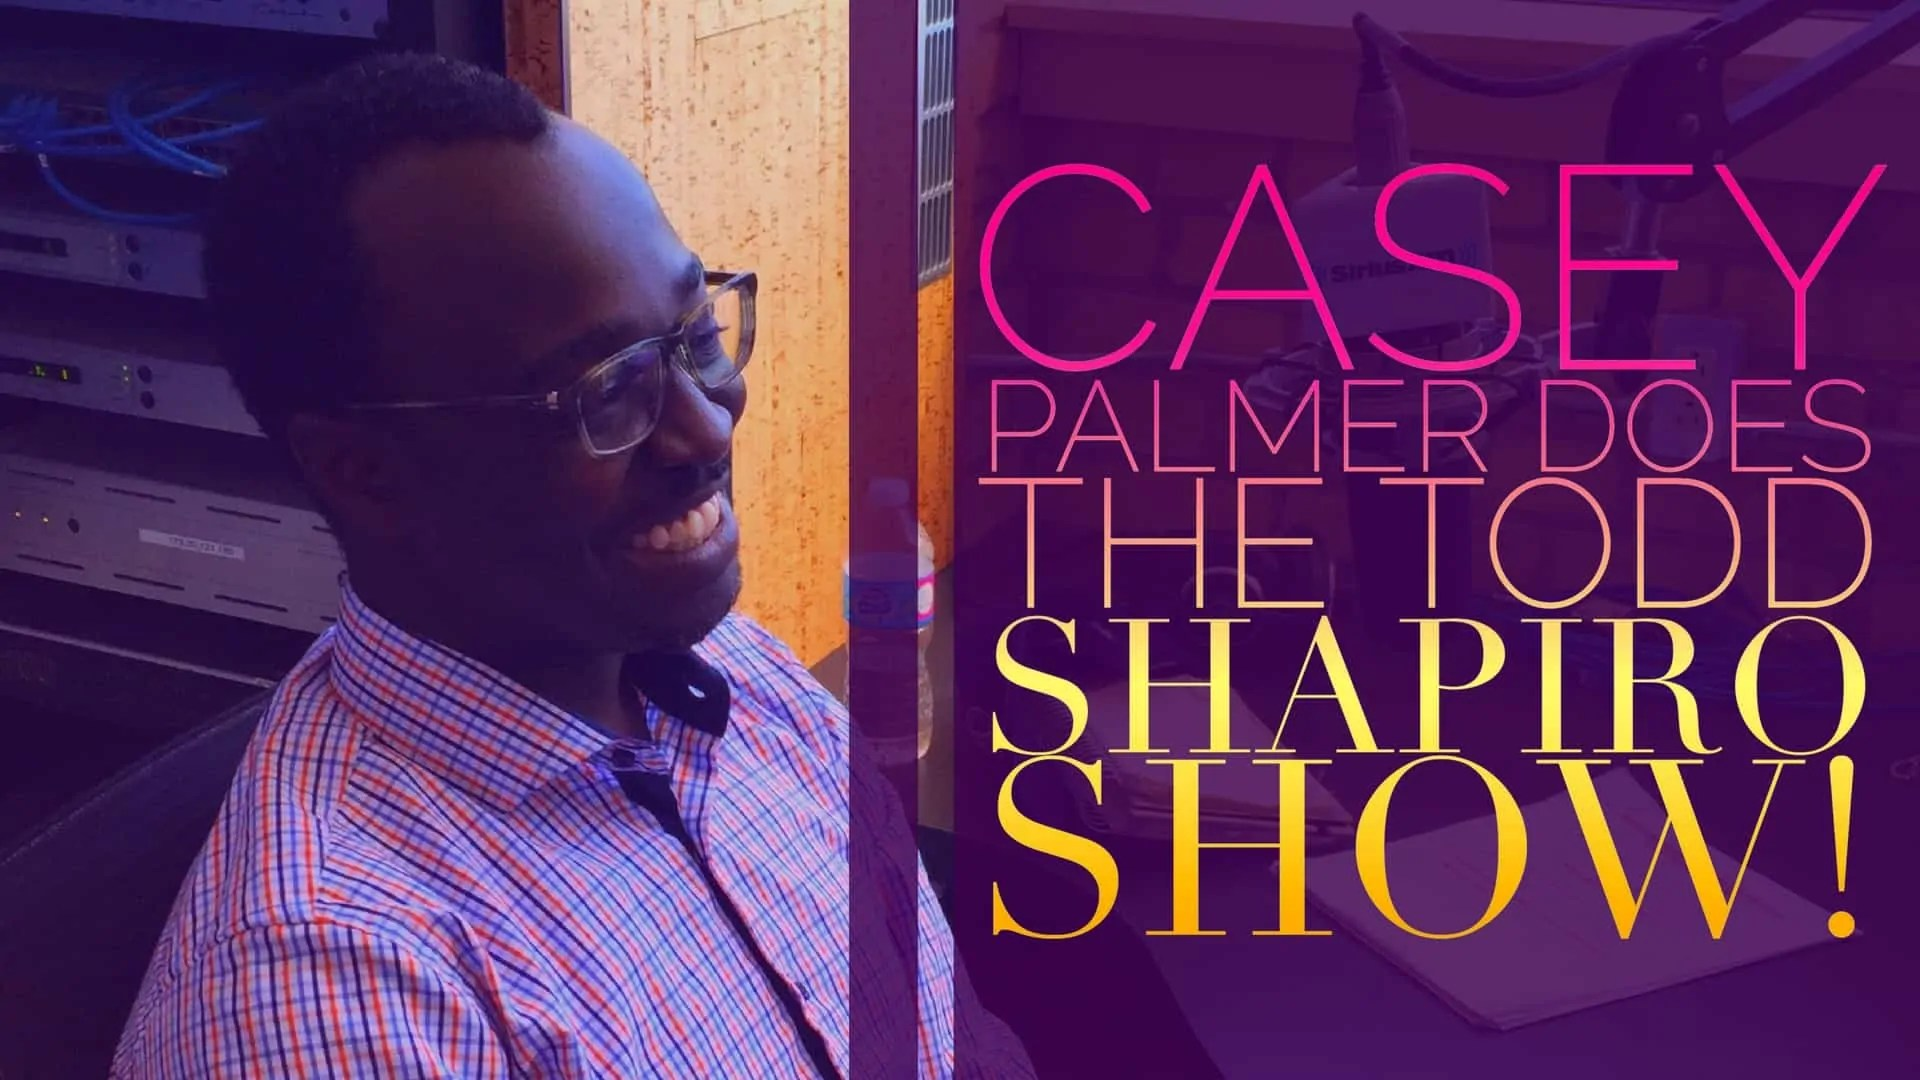 Casey Palmer Does the Todd Shapiro Show! (Featured Image)